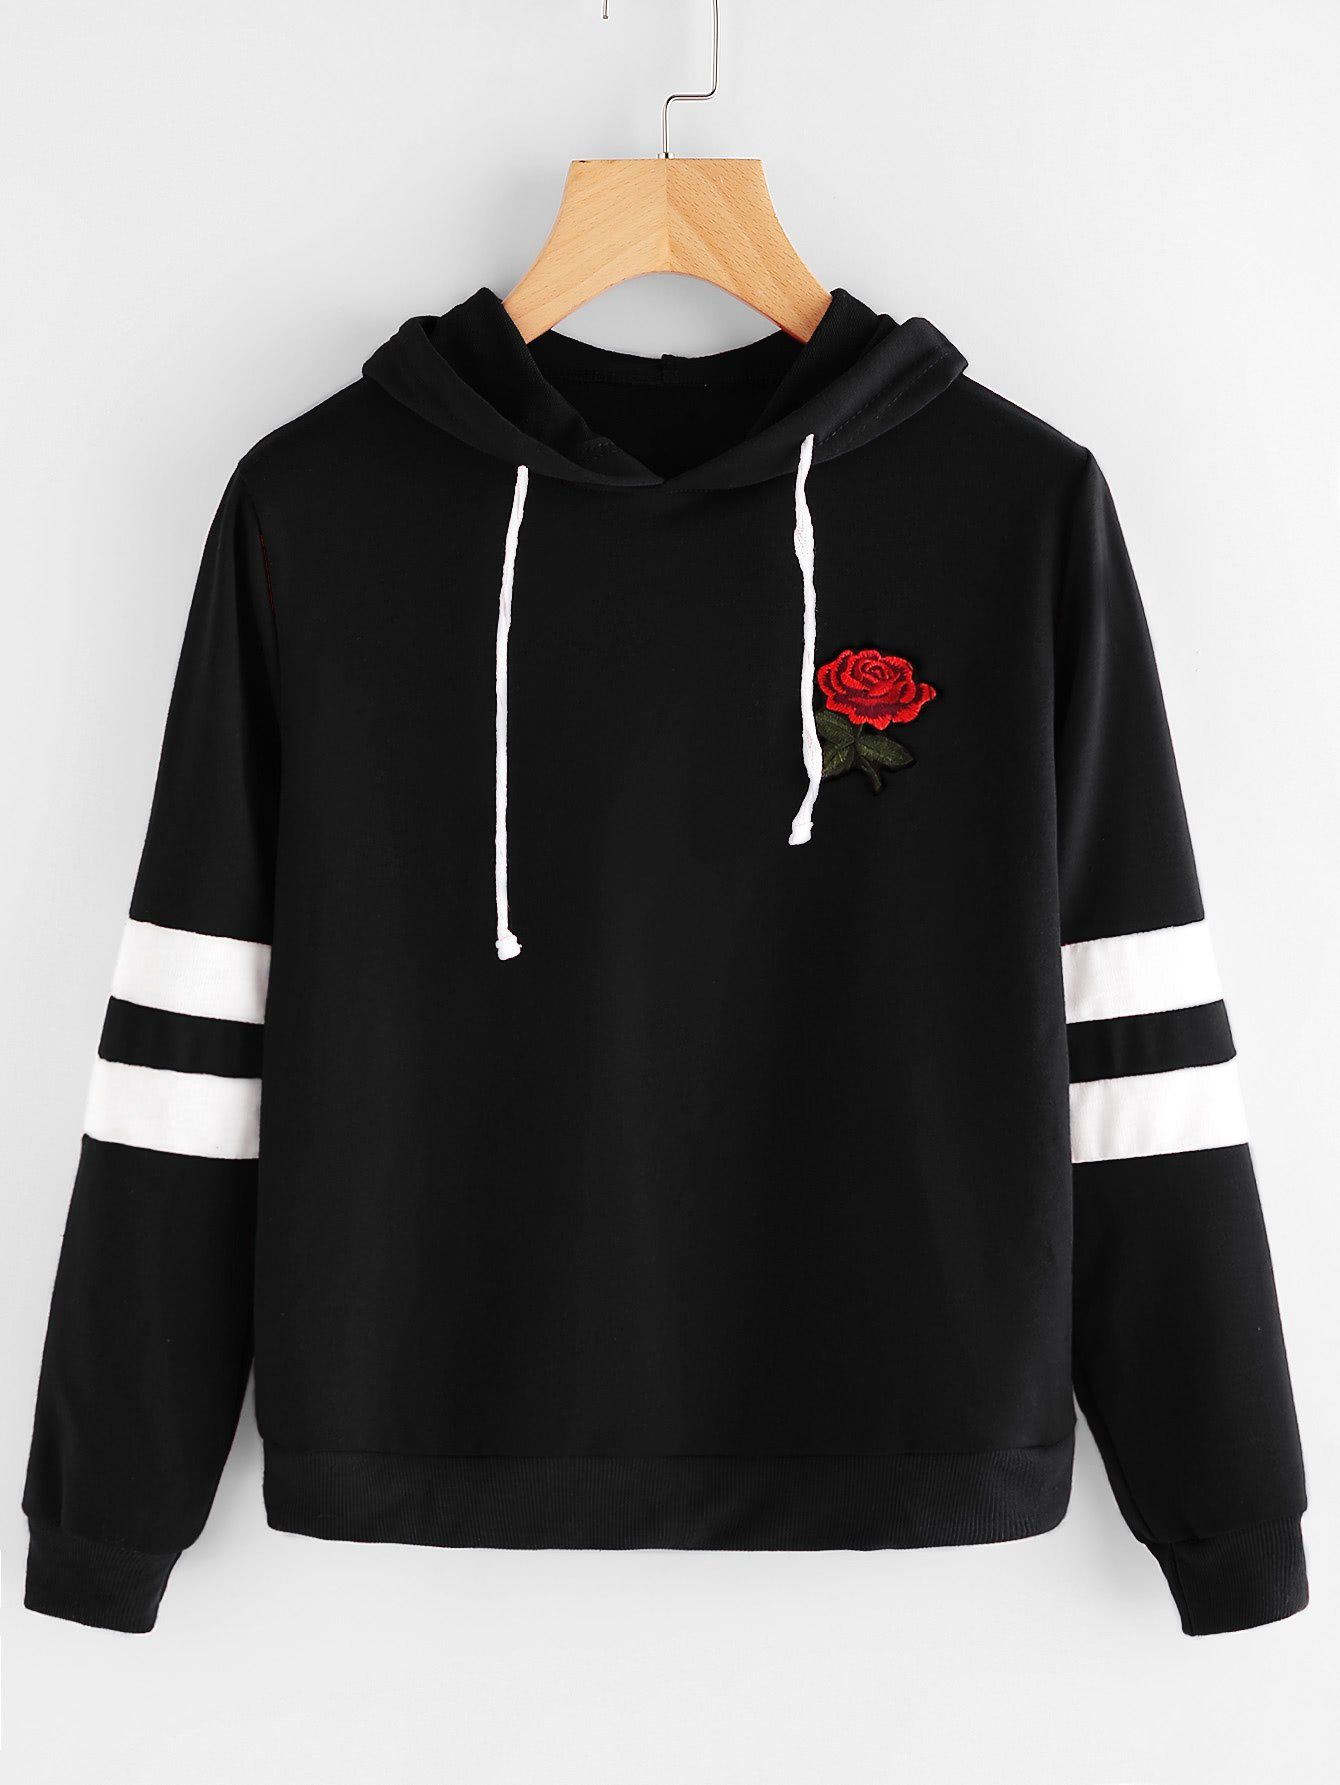 Embroidered School & College Hoodies by Textile Print